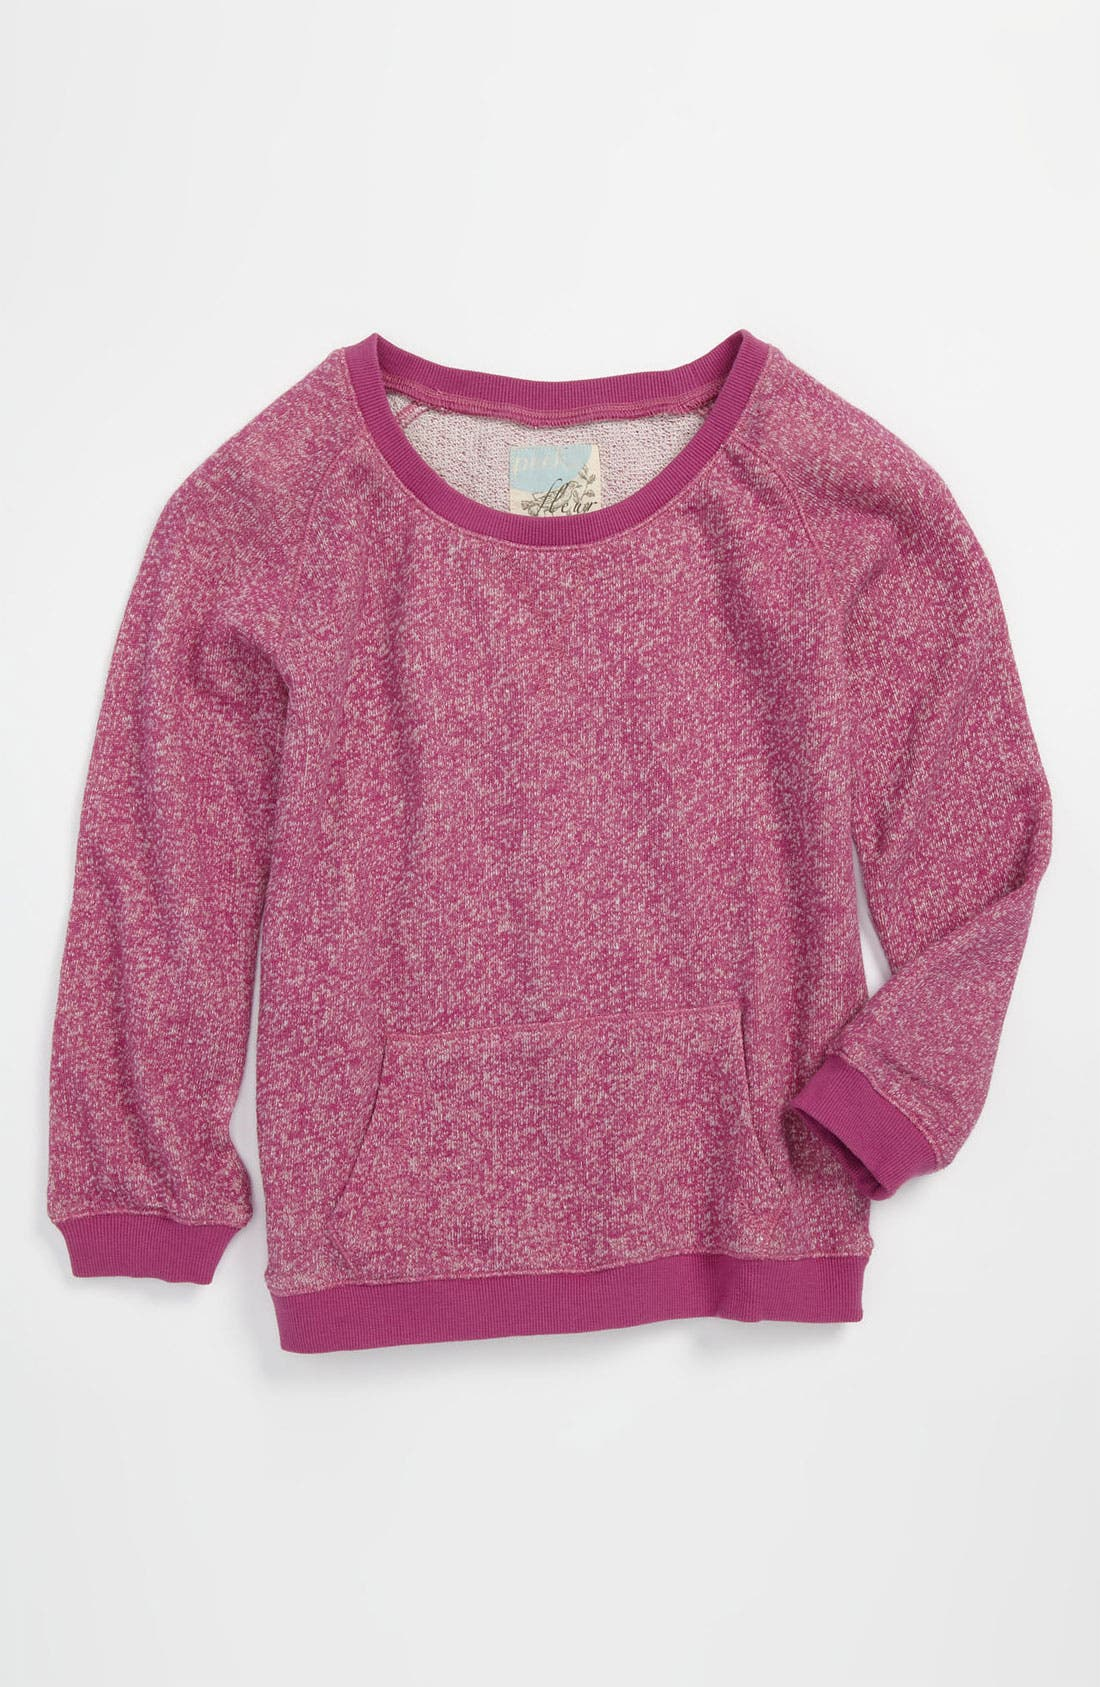 Main Image - Peek Crewneck Sweater (Toddler, Little Girls & Big Girls)